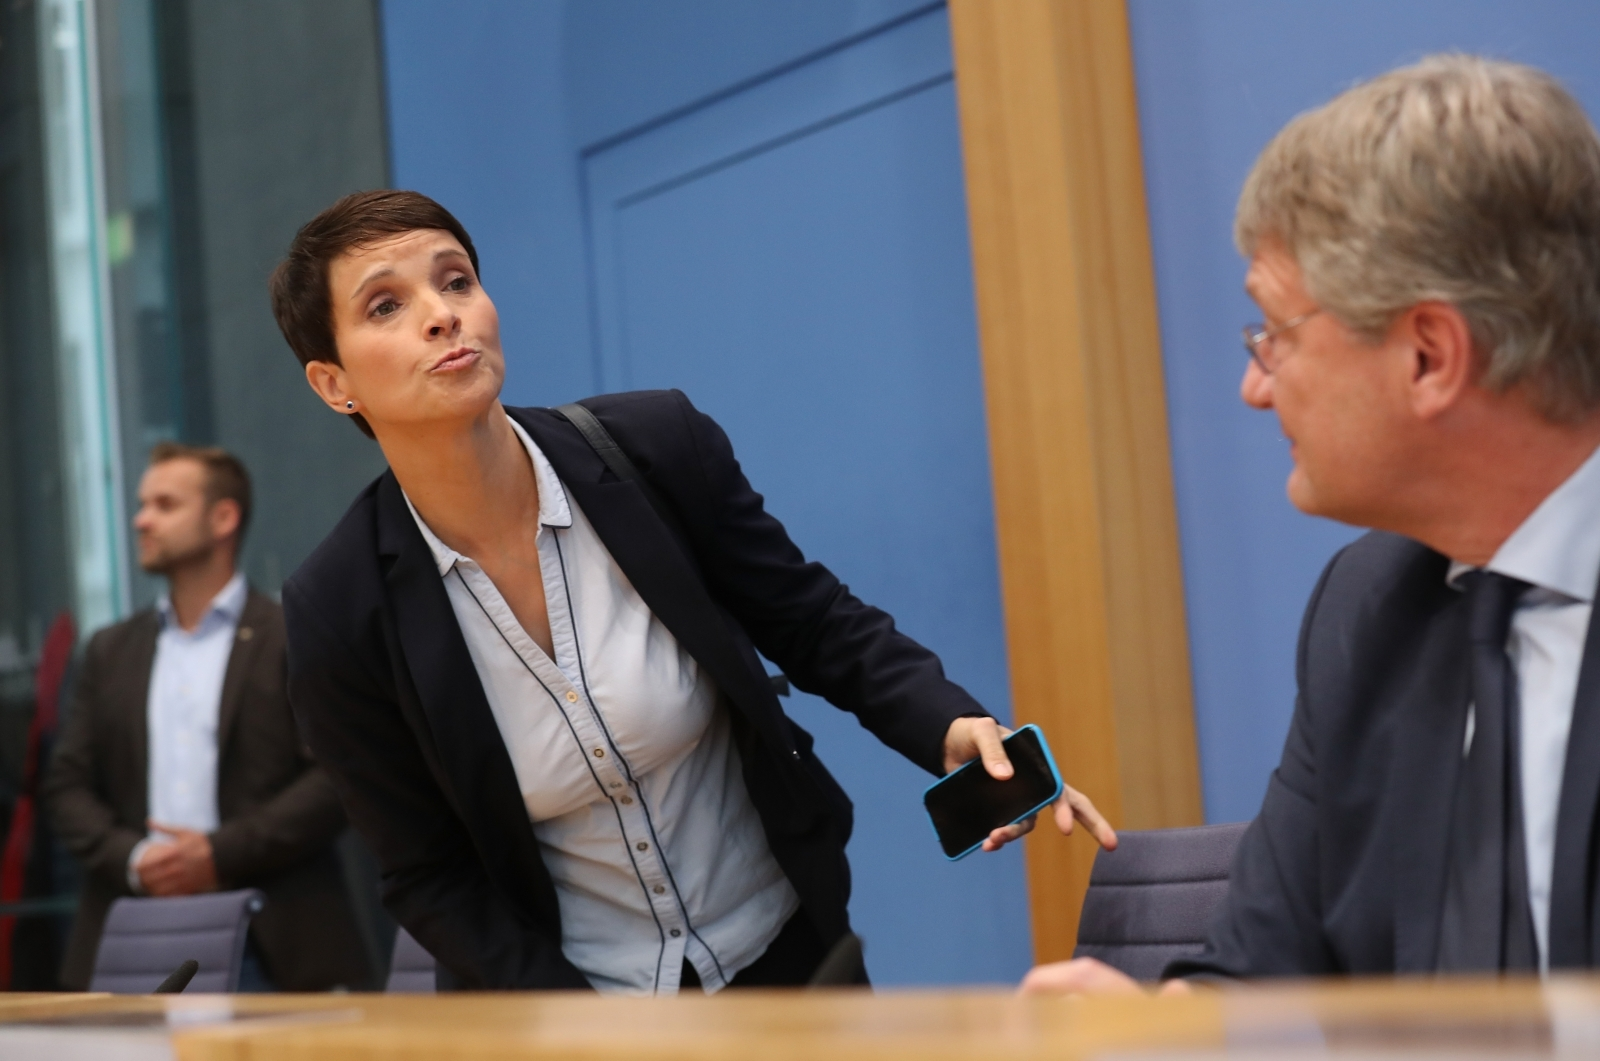 Frauke Petry quits the AfD